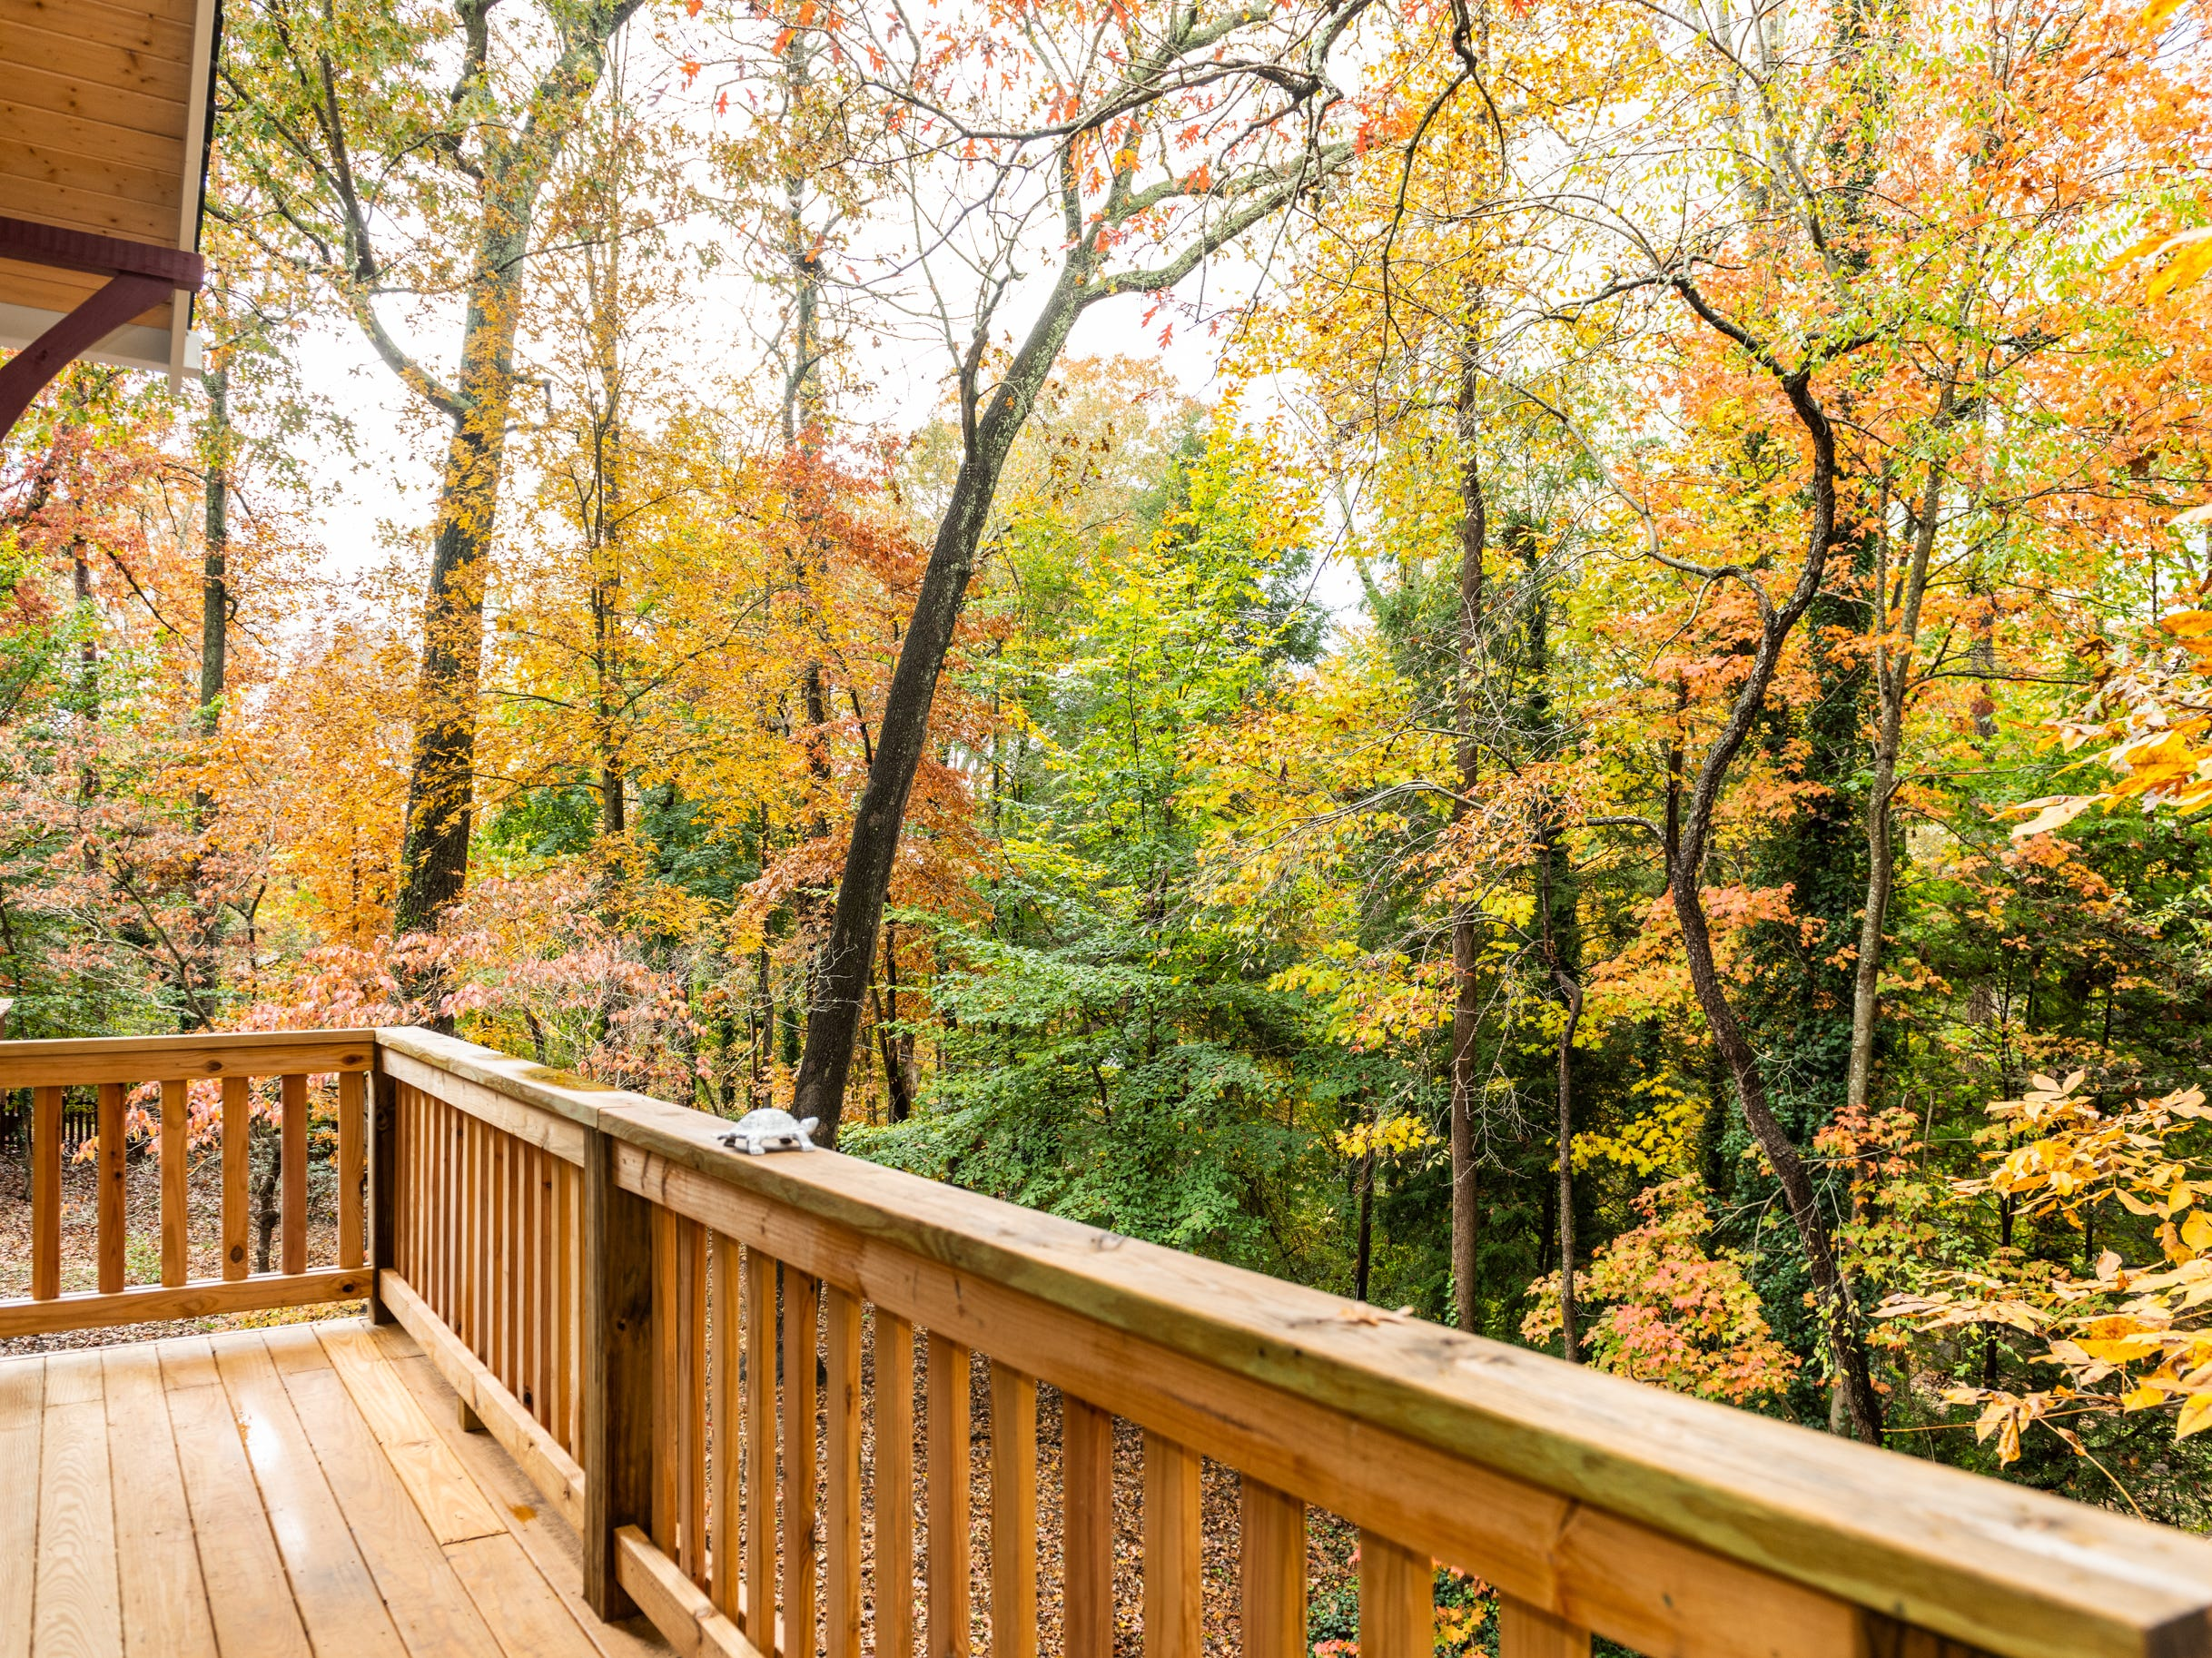 Back deck overlooking fall colors at the home of Pat and Ron Hart in Asheville's Montford neighborhood.